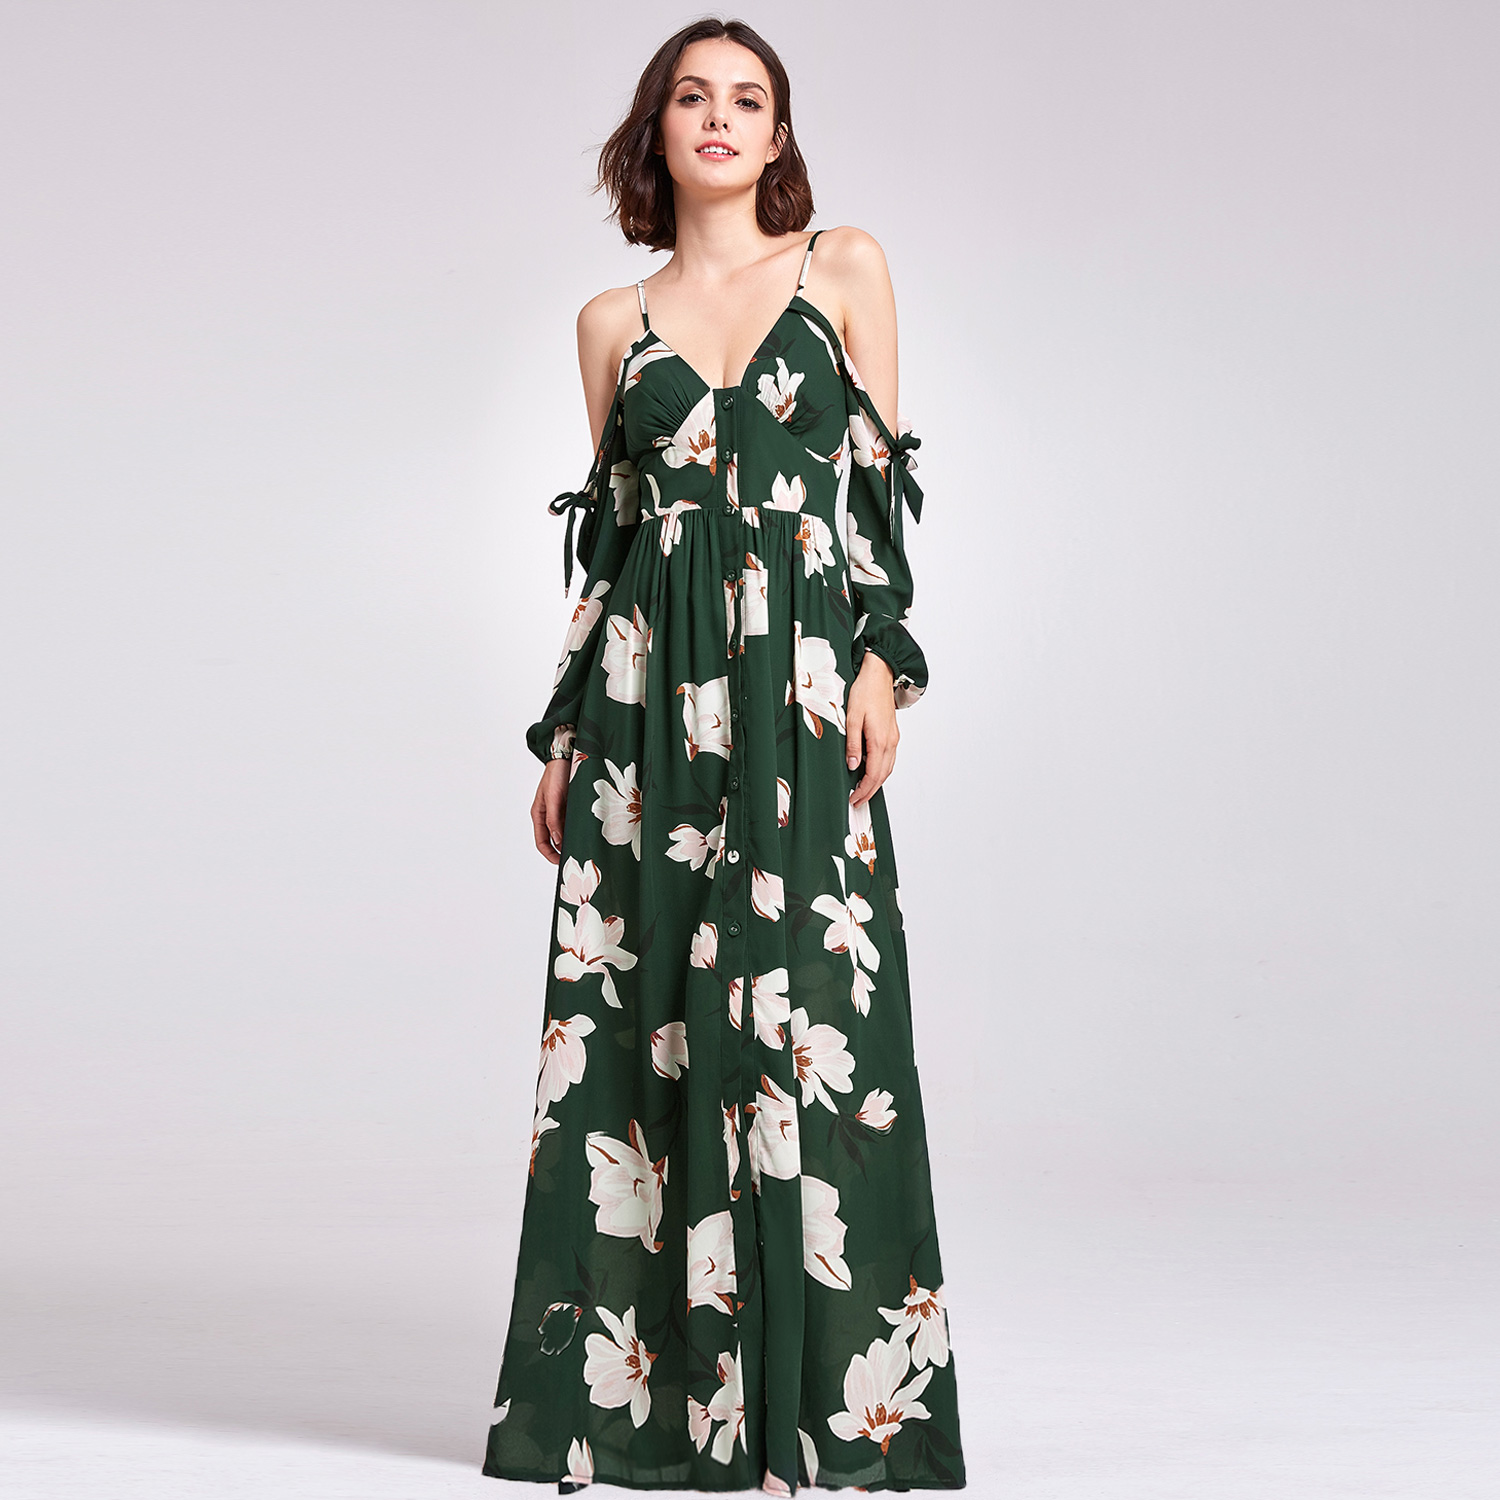 5d07e40e069fe Alisa Pan Cold Shoulder Floral Print Long Maxi Green Dress 07178 ...